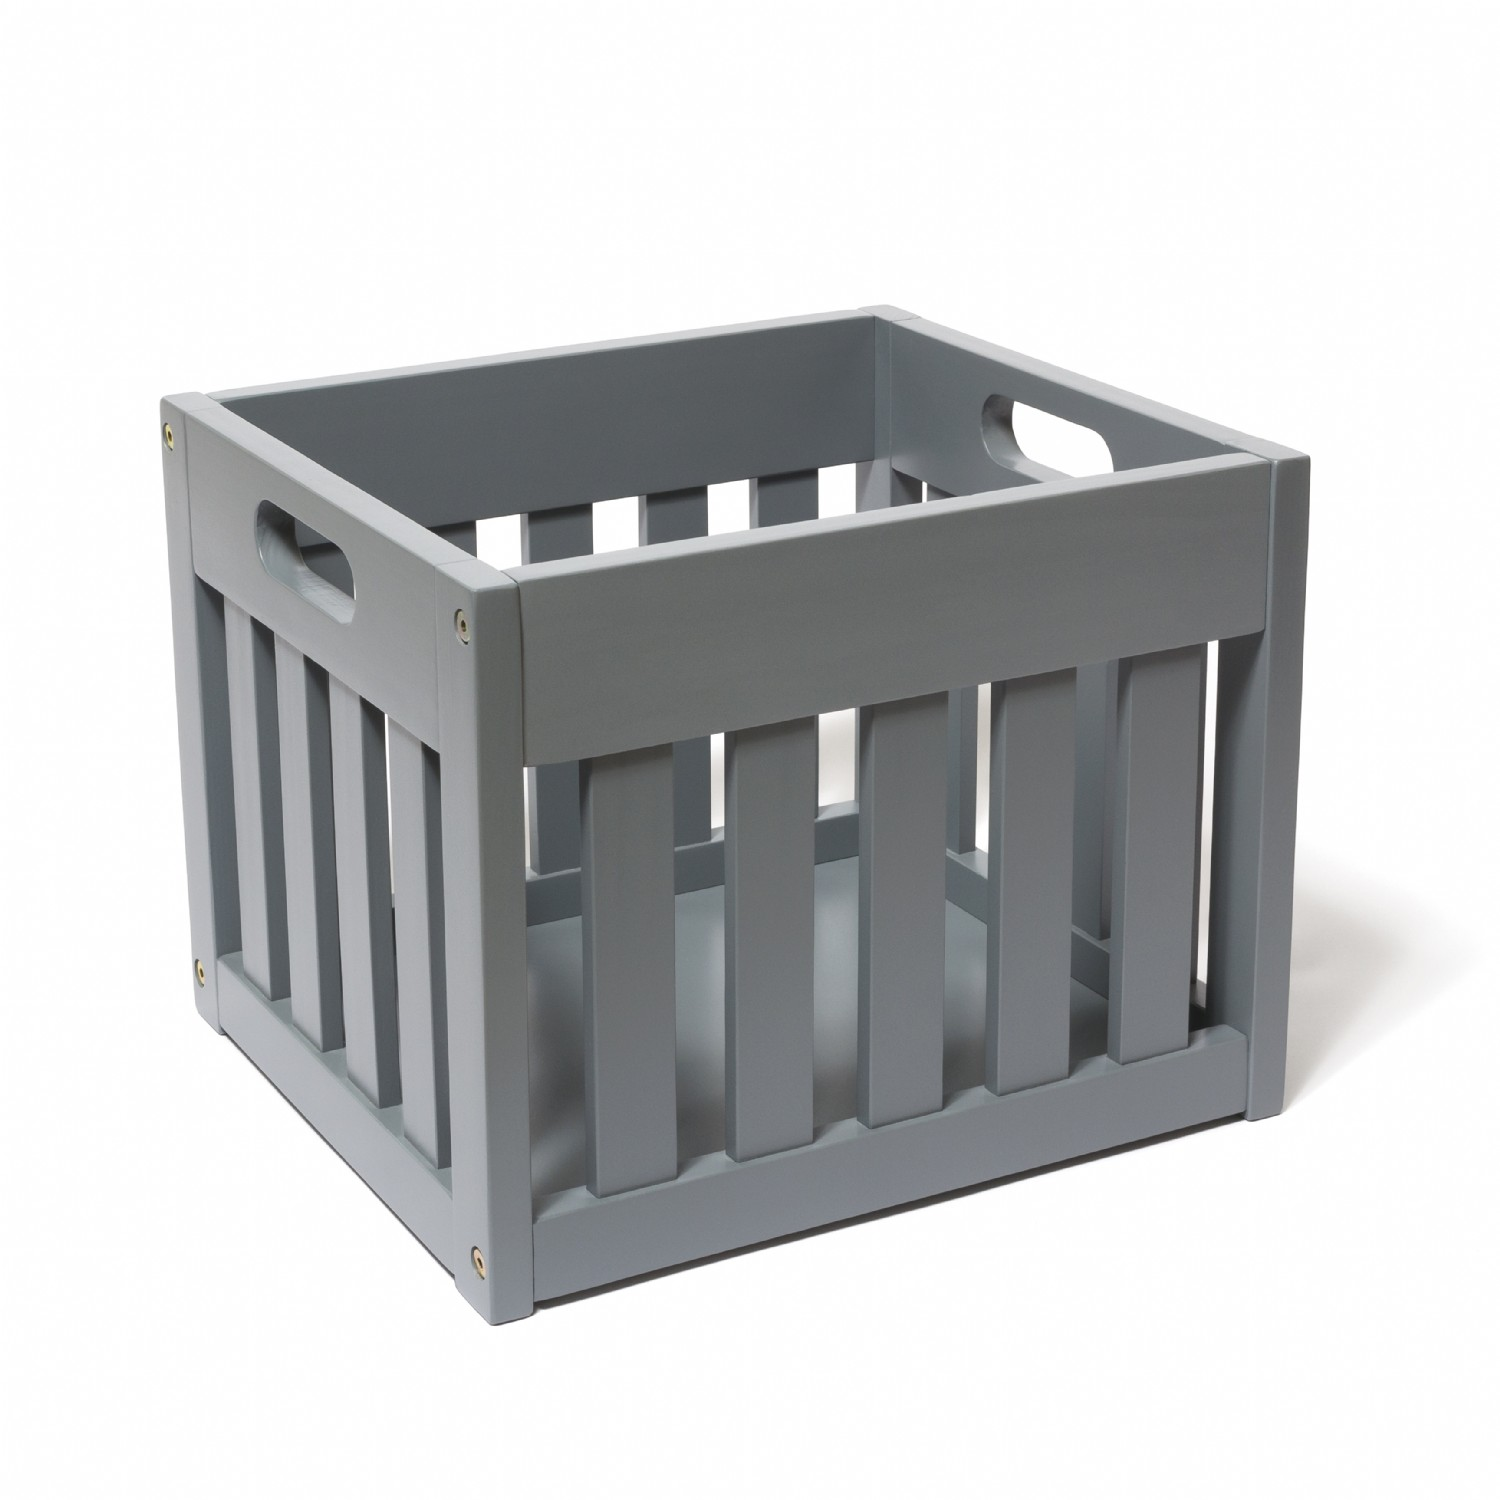 Wooden Storage Crate, Gray